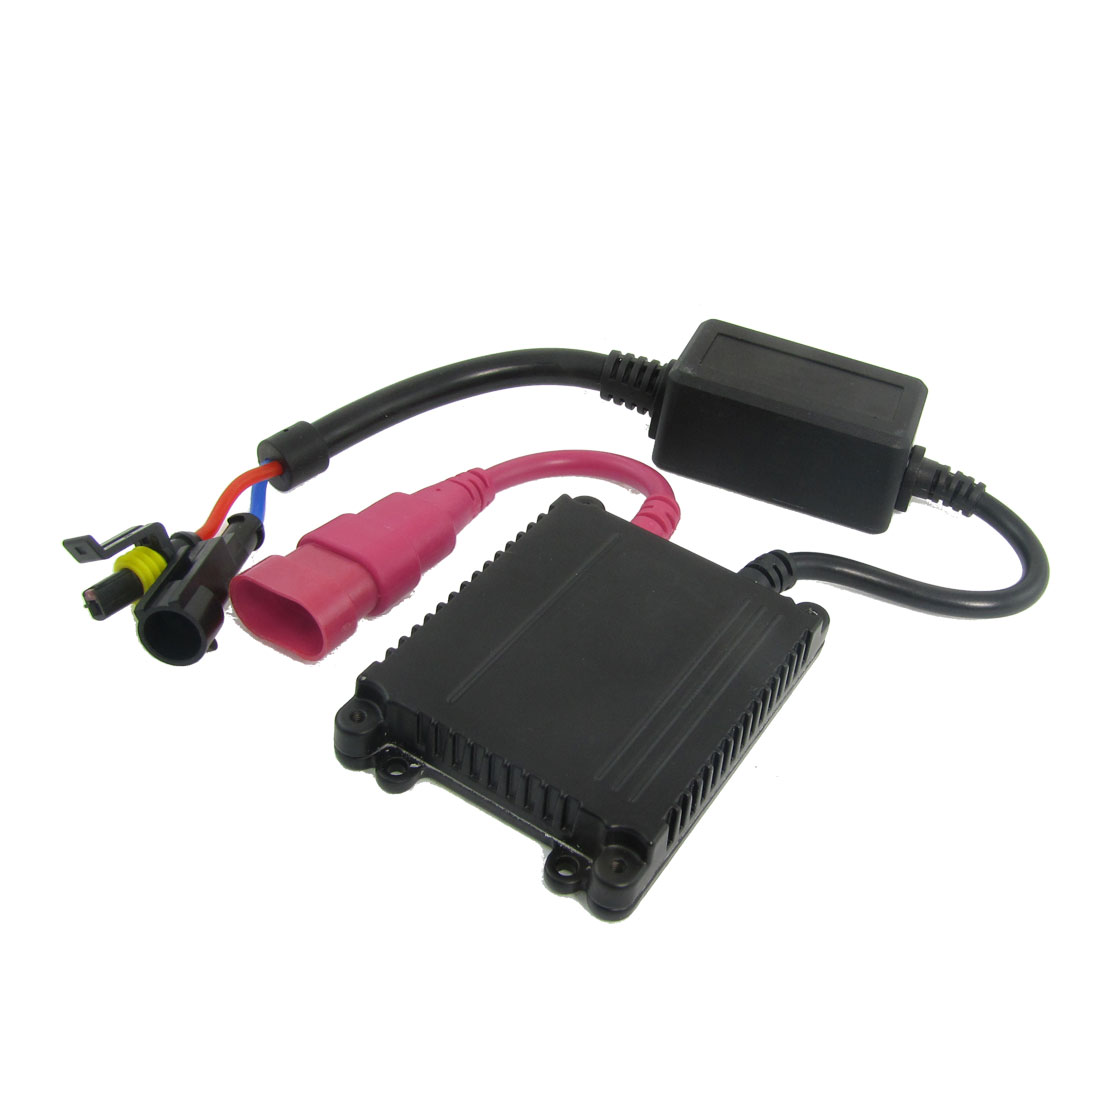 HID Xenon Conversion Slim Ballast Replacement DC 12V 35W Black internal